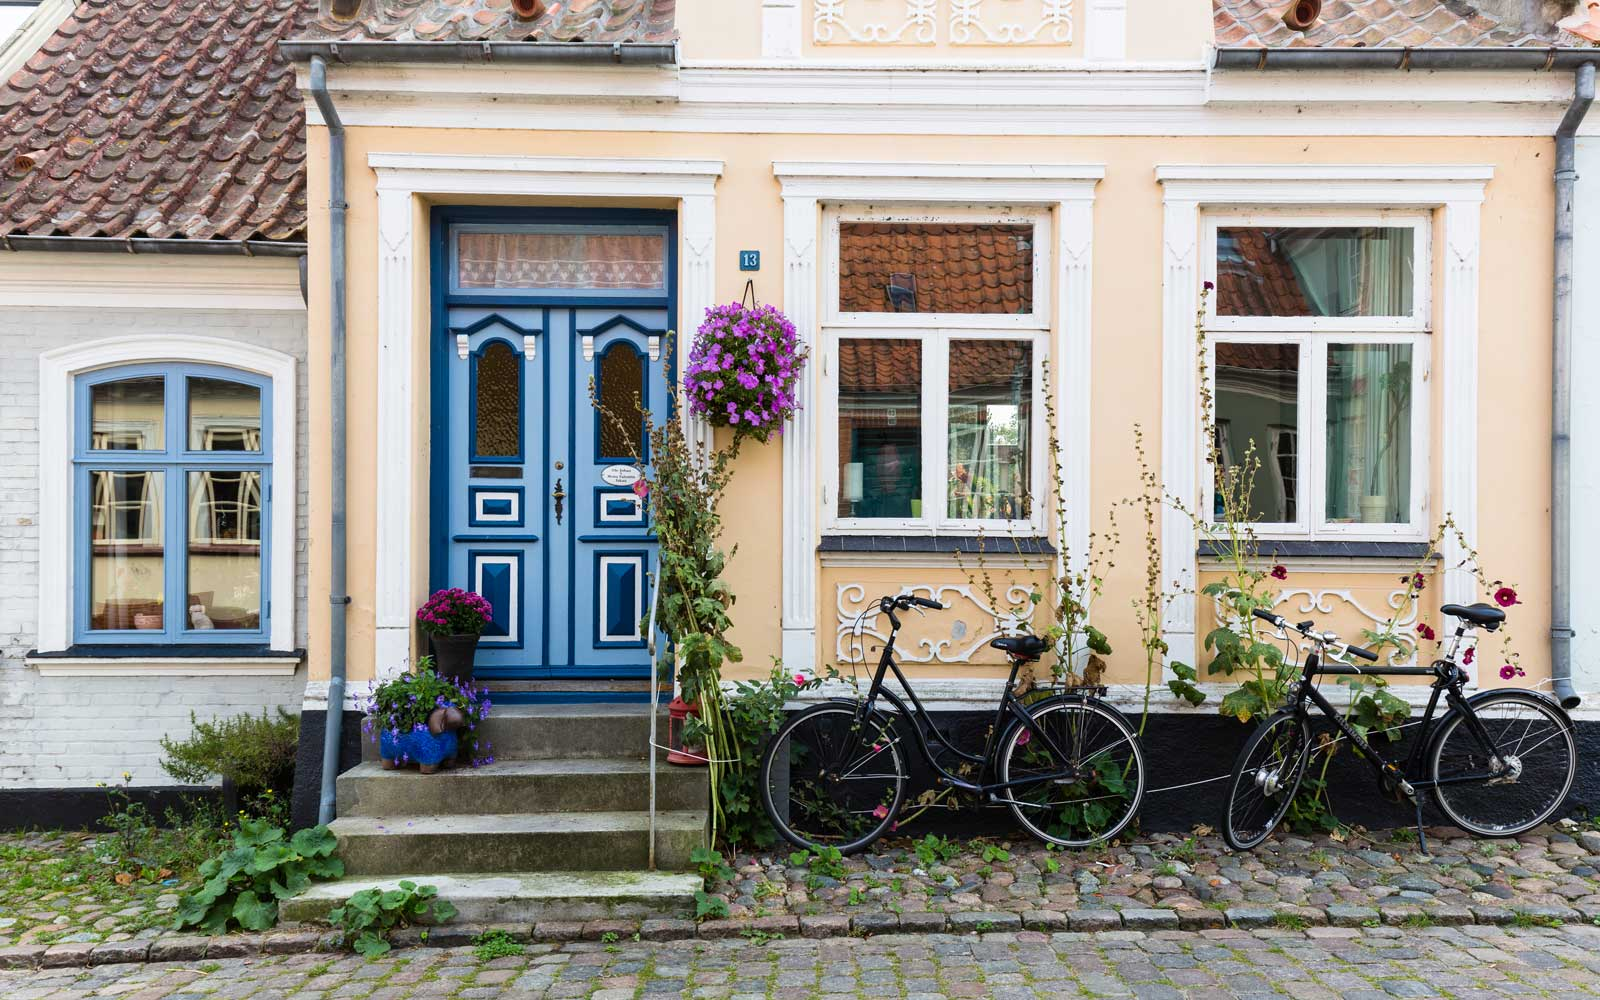 Two bicybles in front of a house with a blue door in a cobblestone alley of Aeroskobing, Aero Island